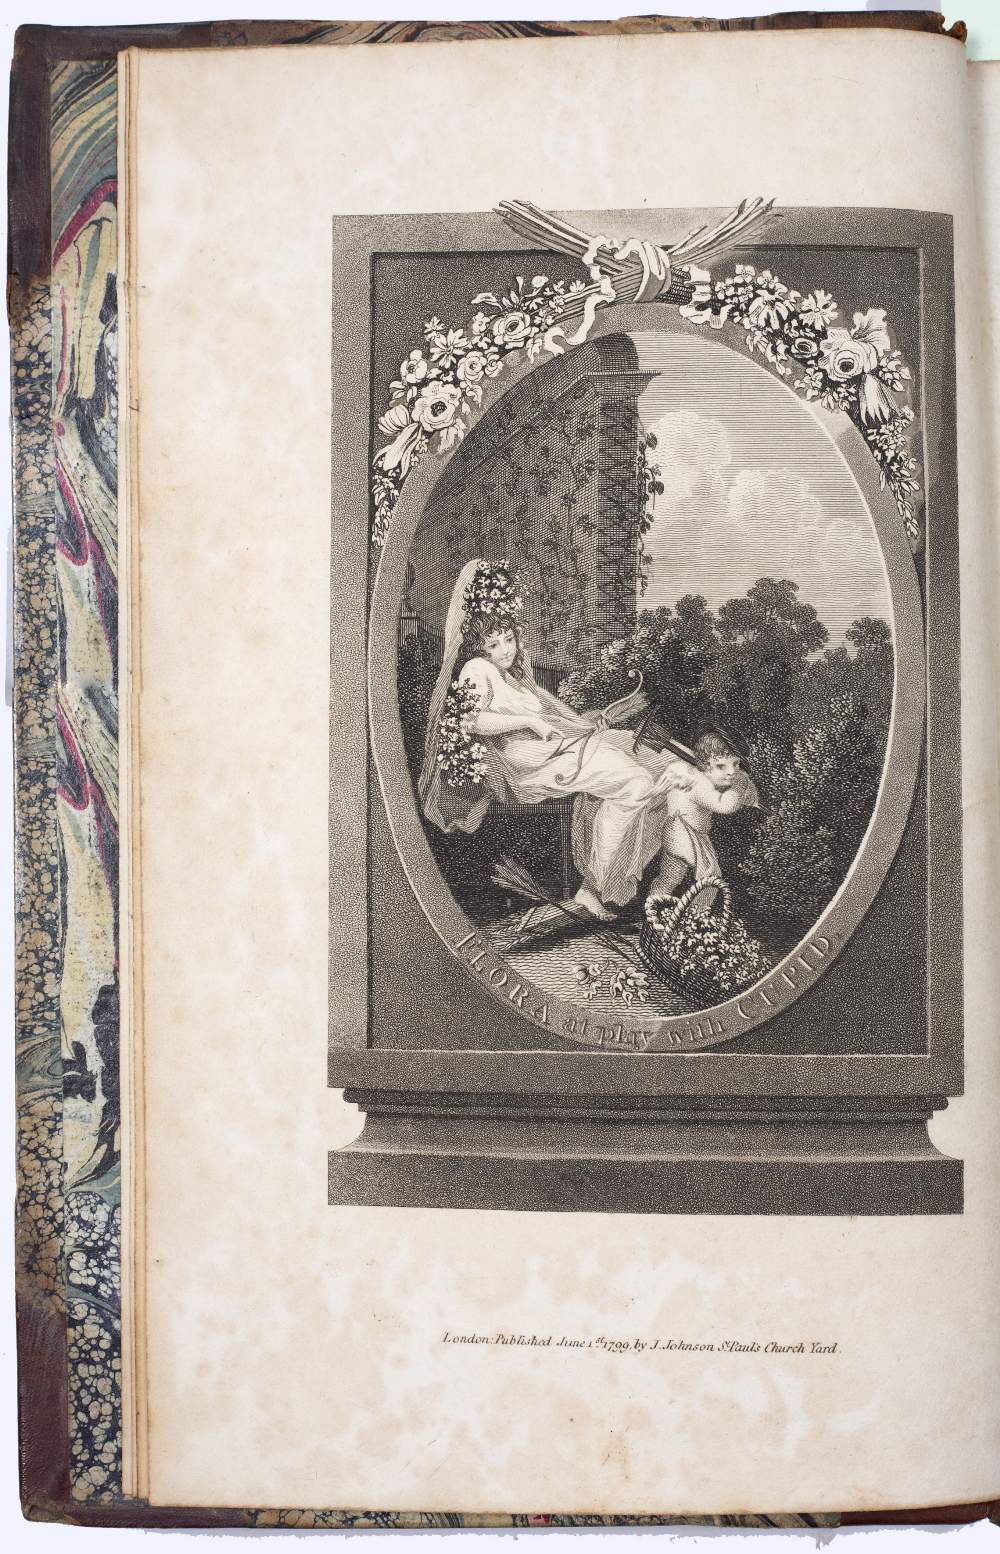 DARWIN, Erasmus (1731-1802), Philosopher and Physician 'The Botanic Garden' A Poem in Two Parts. - Image 5 of 7